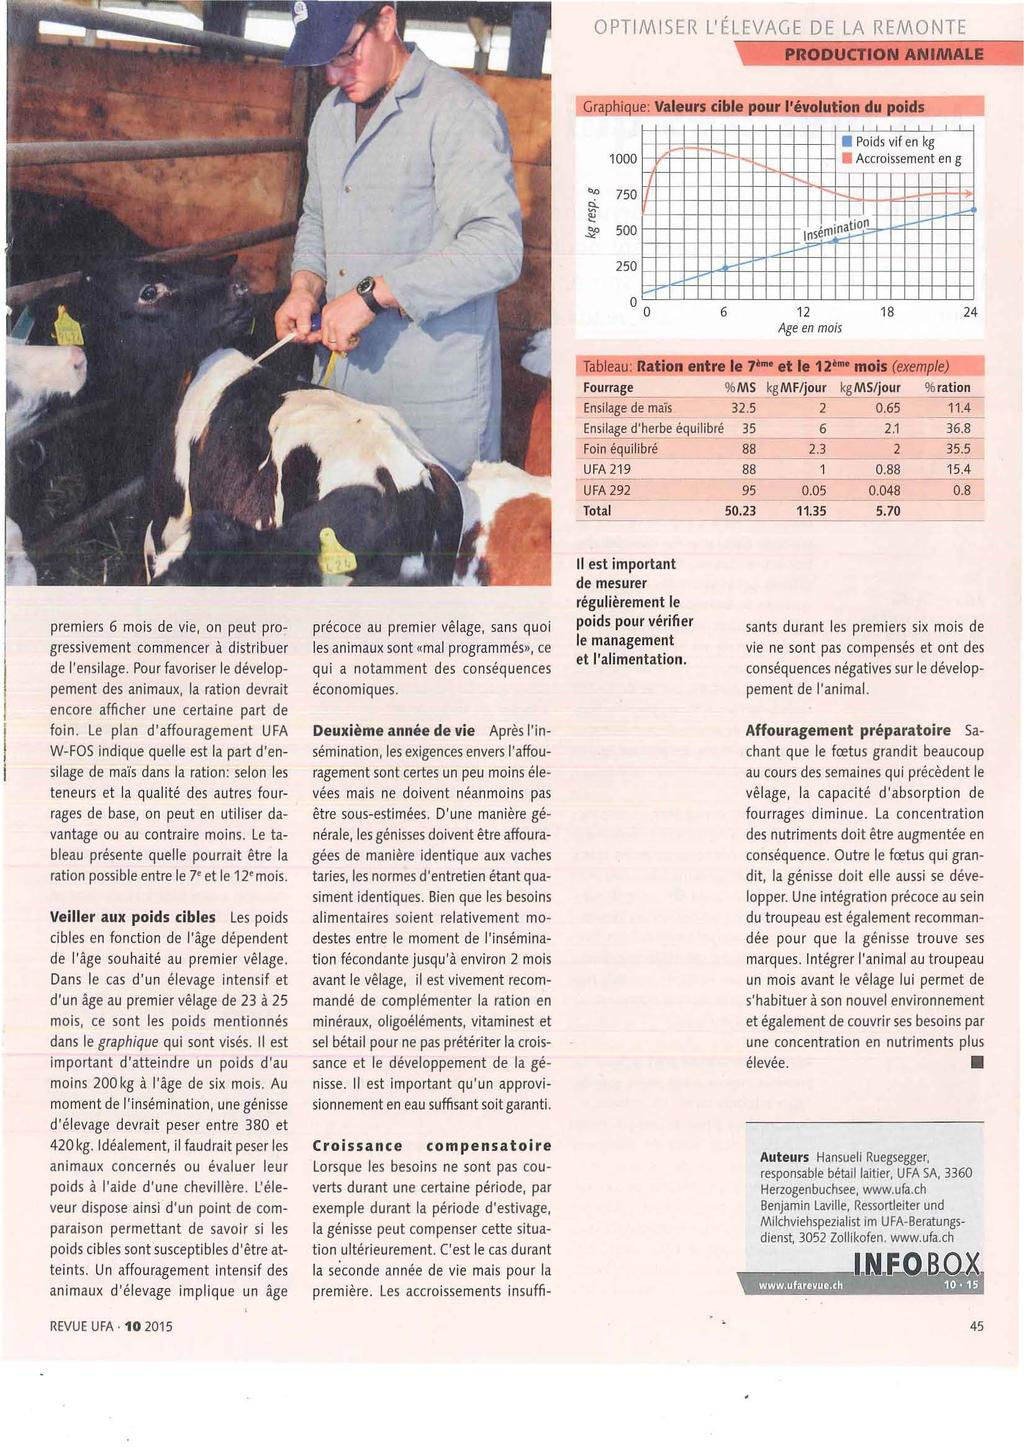 sauvent acidose inra vaches 2 heures